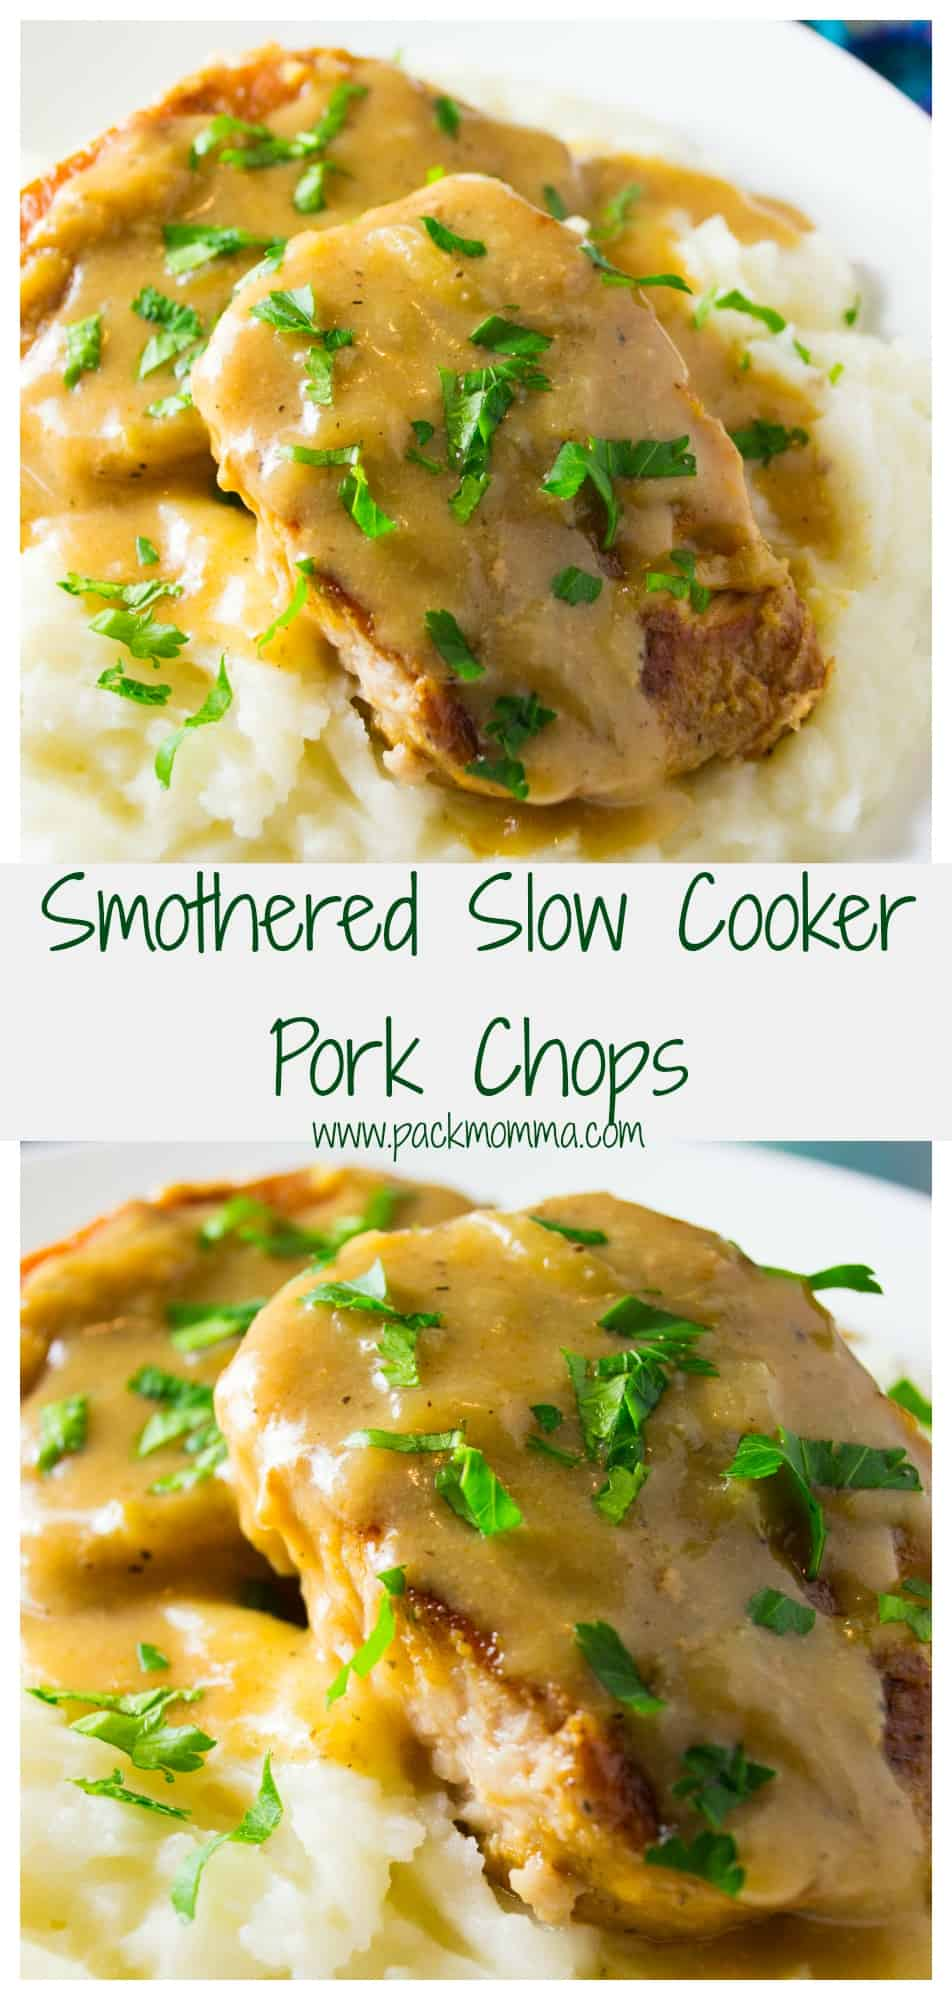 Easy Slow Cooker Pork Chops | These Easy Slow Cooker Pork Chopsare fork tender, tasty and smothered in a rich creamy onion sauce. You will never over cook pork chops again! | Pack Momma | https://www.packmomma.com